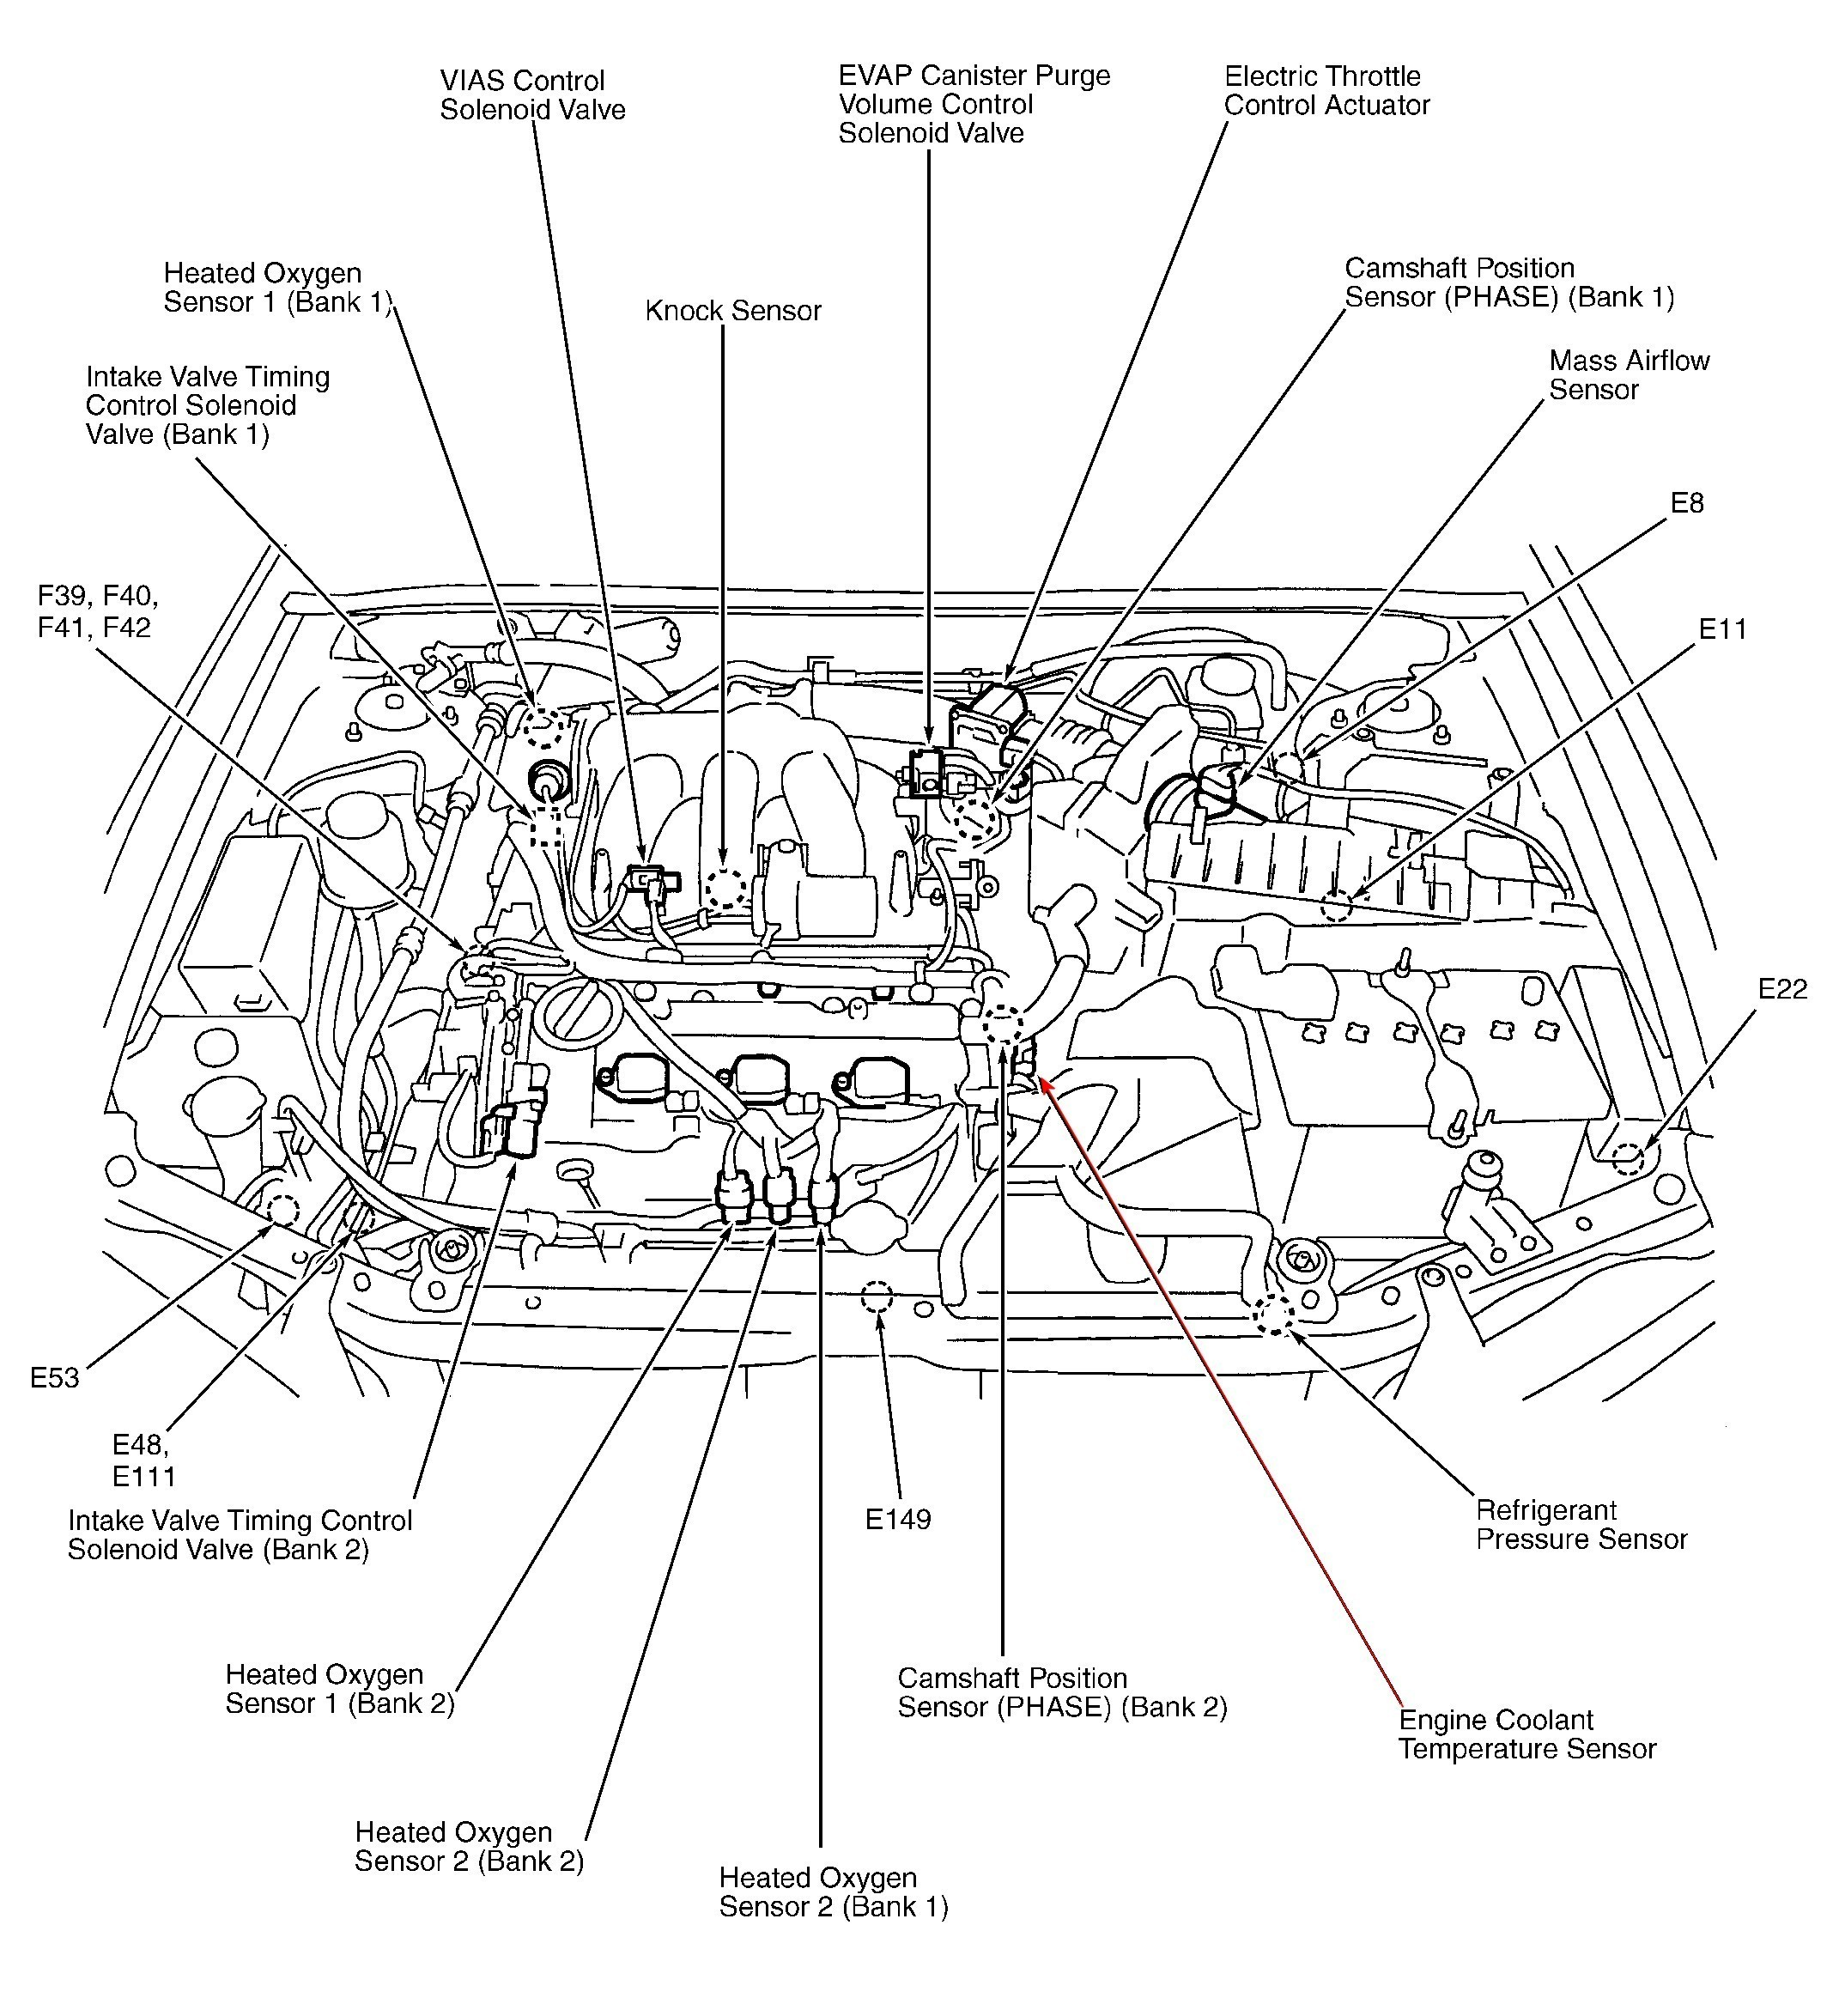 DIAGRAM] 1996 Nissan Maxima Wiring Diagram Youtube FULL Version HD Quality  Diagram Youtube - SHOULDERDIAGRAM.AUBE-SIAE.FRaube-siae.fr